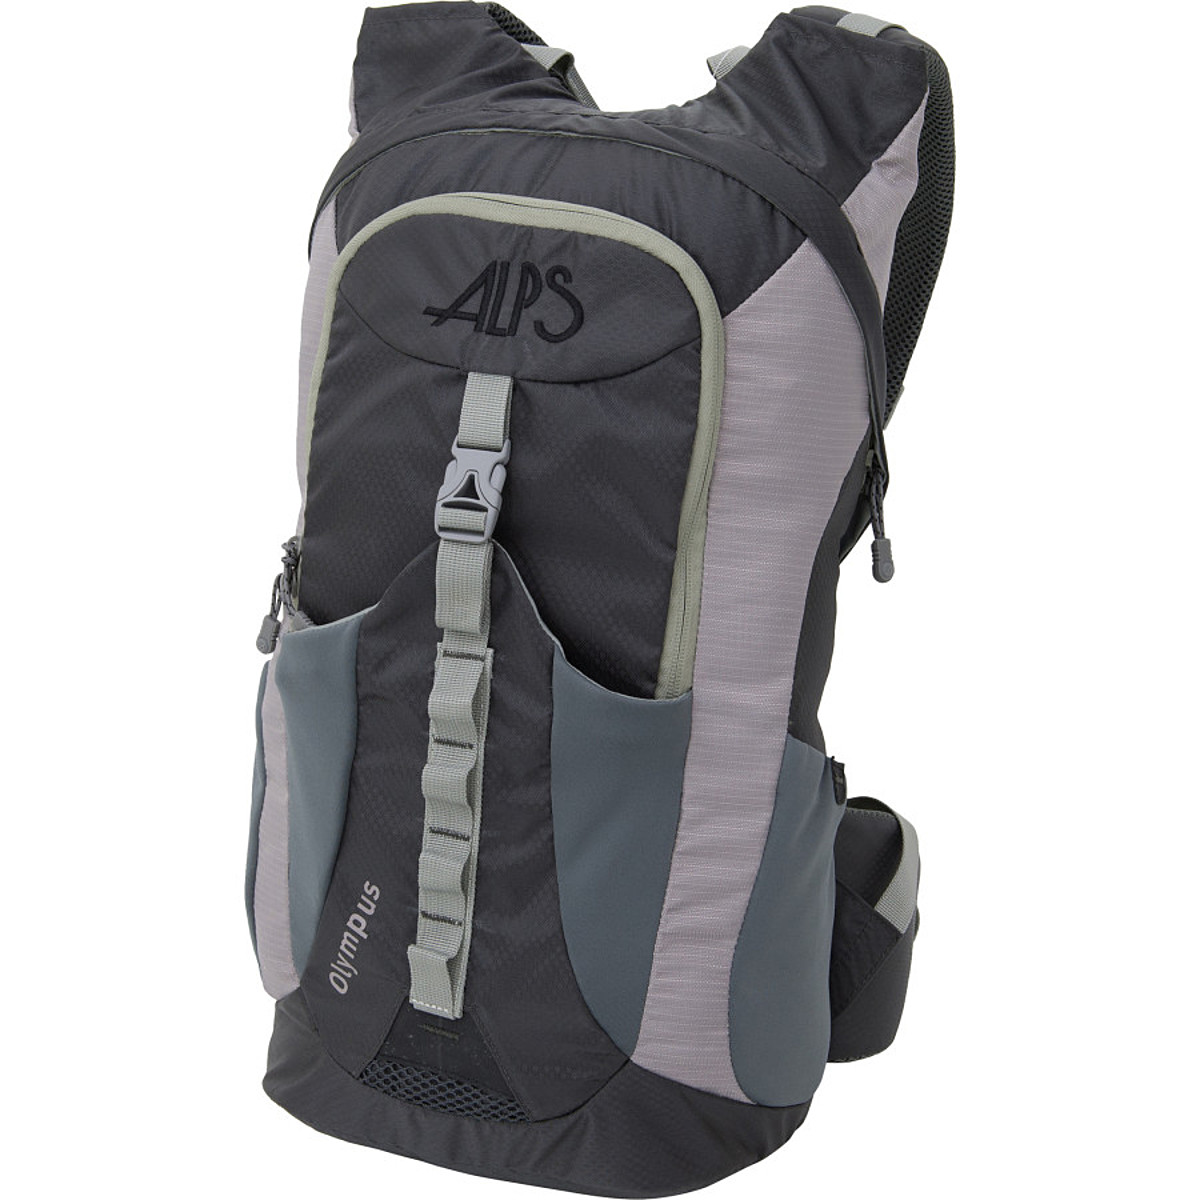 ALPS Mountaineering Olympus Backpack